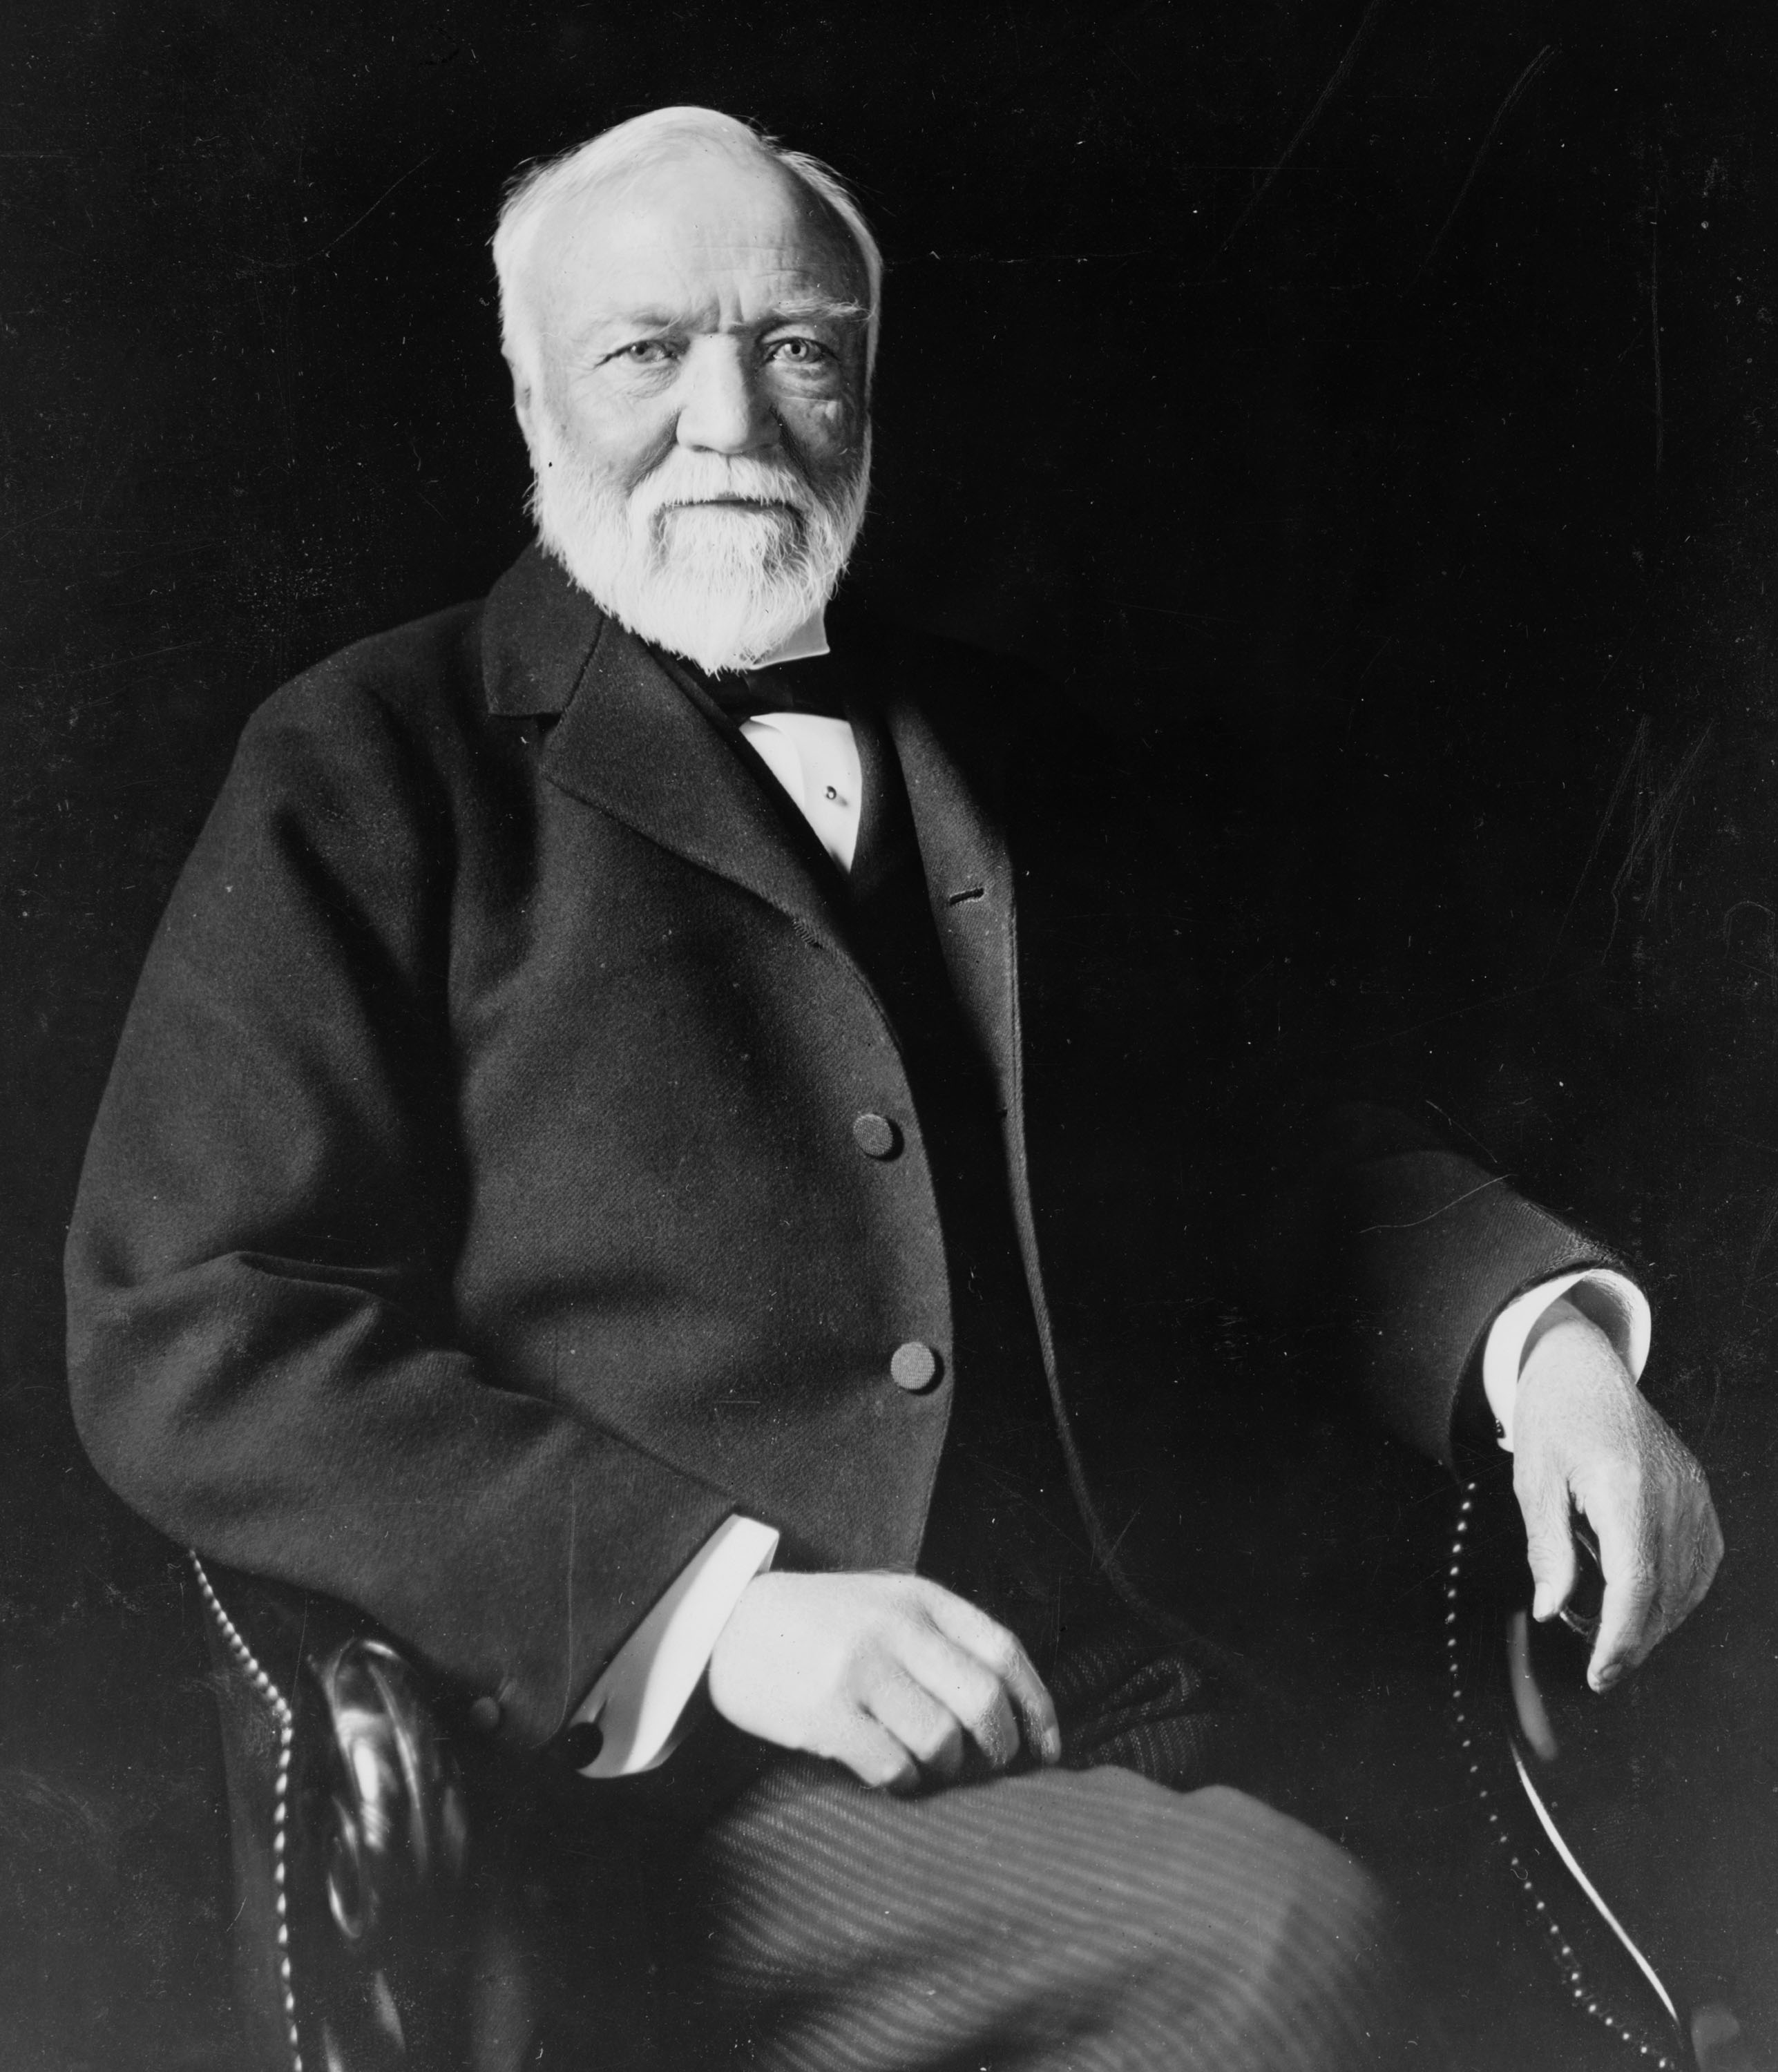 Andrew Carnegie, potential benefactor for Pickering's Mars mirrors. Theodore C. Marceau [Public domain], via Wikimedia Commons.